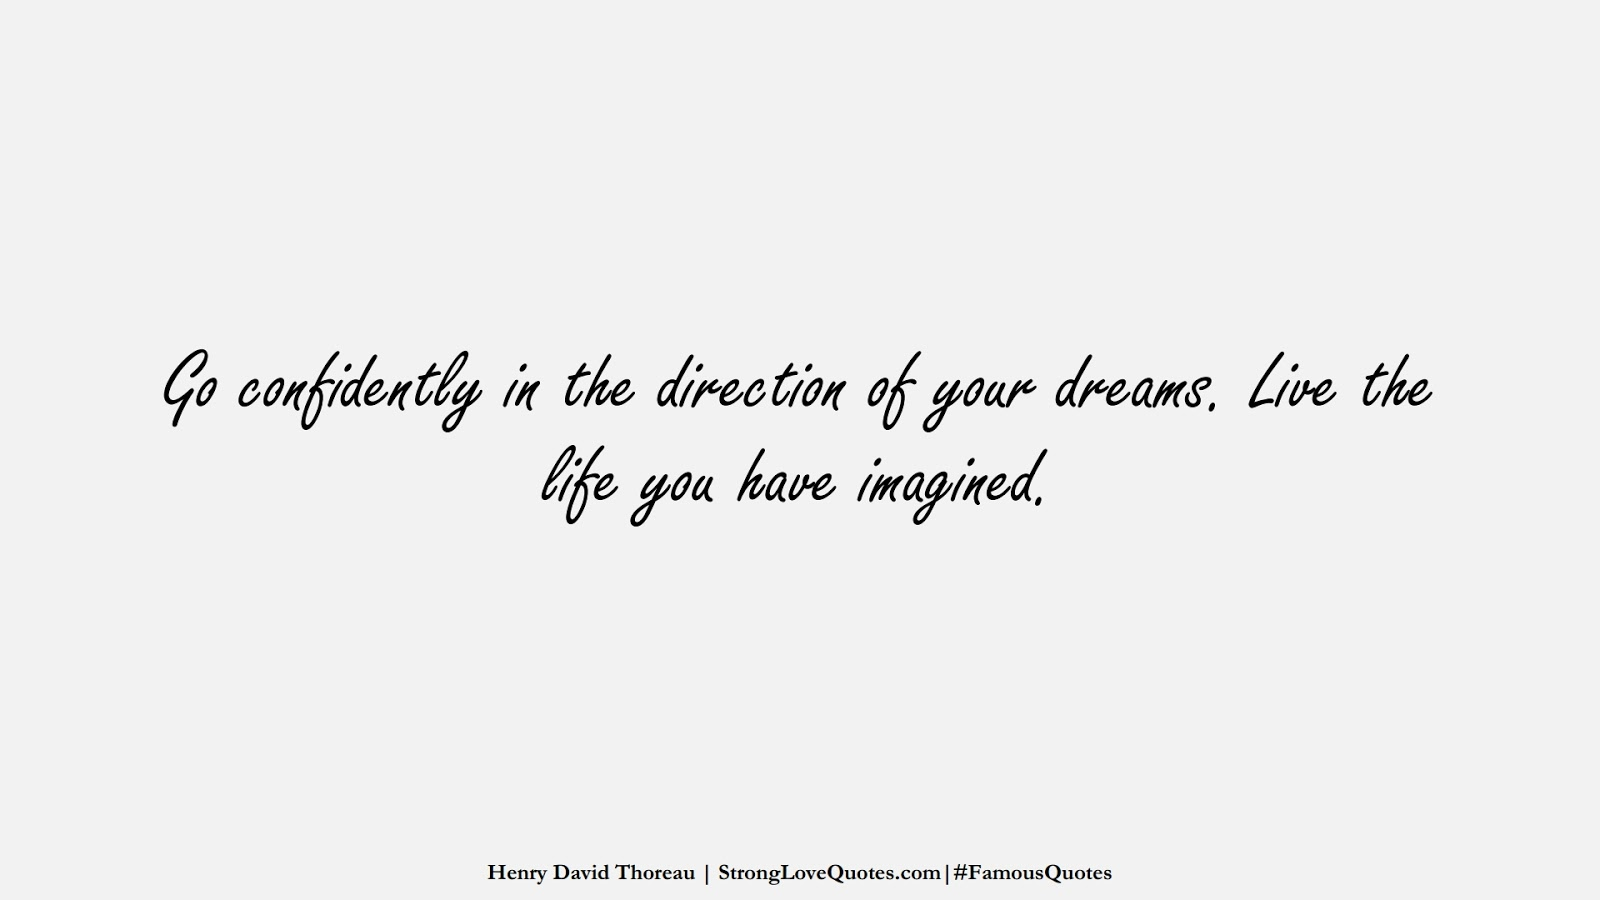 Go confidently in the direction of your dreams. Live the life you have imagined. (Henry David Thoreau);  #FamousQuotes